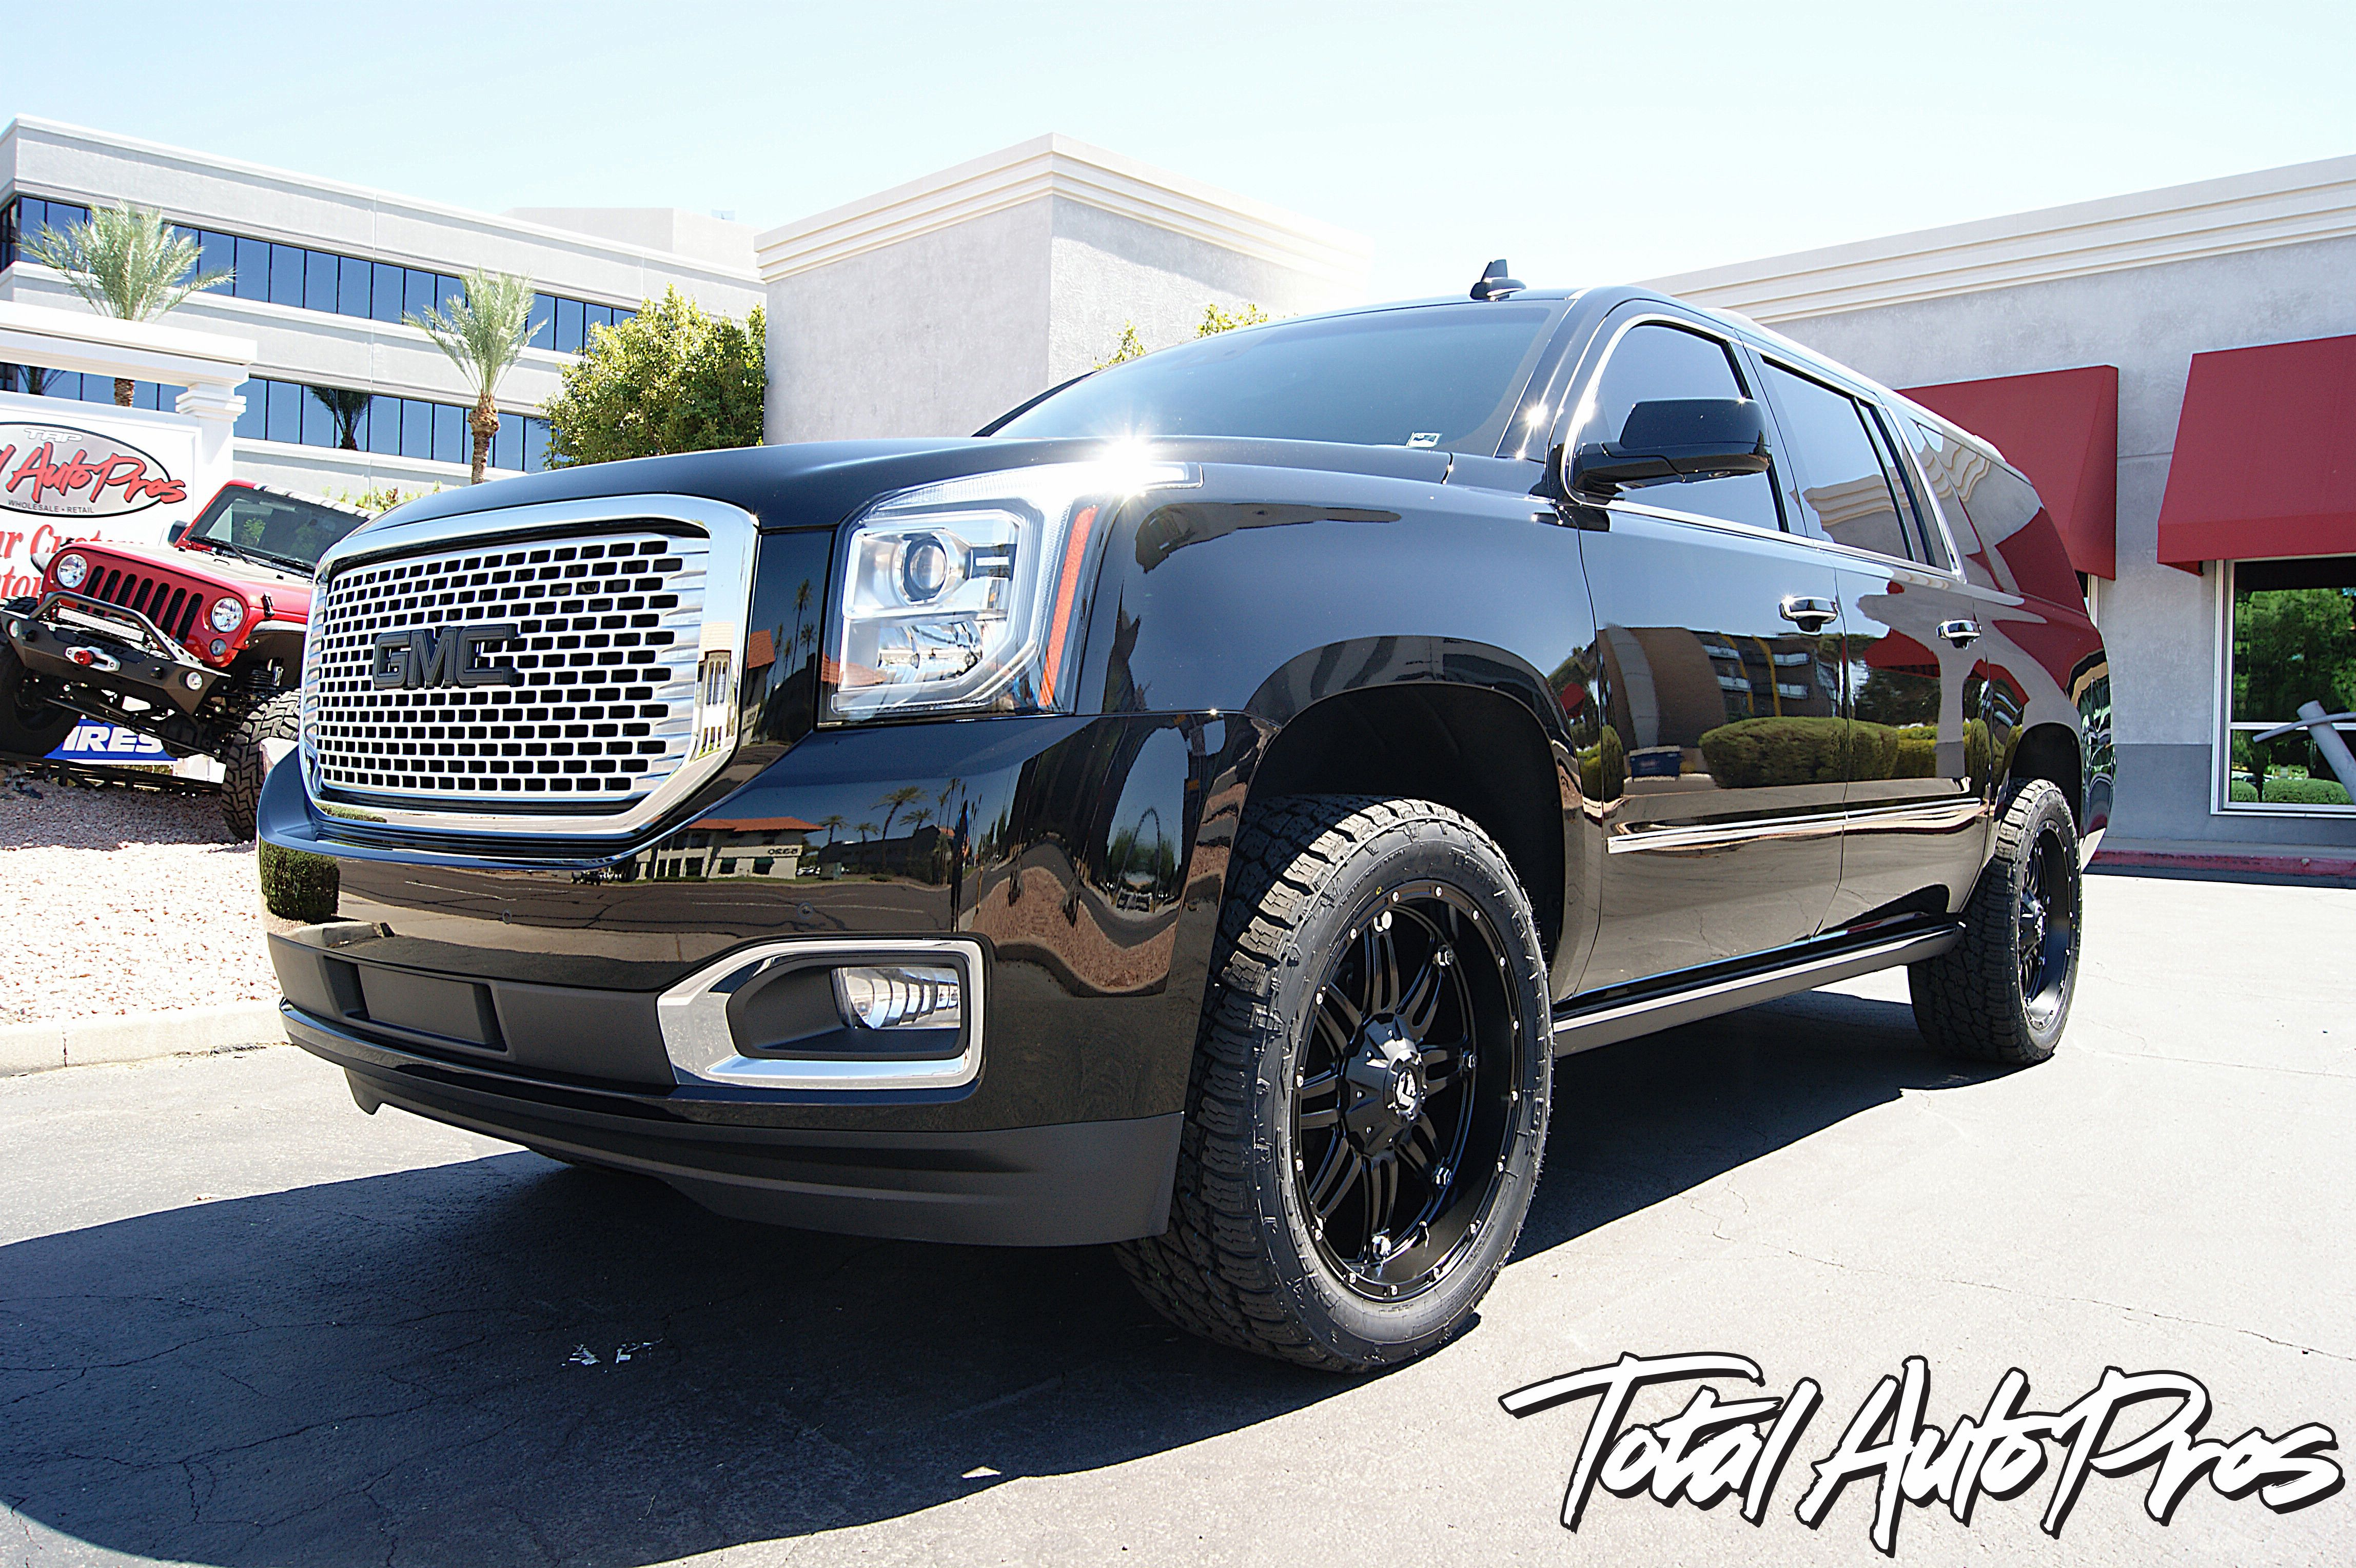 2016 Gmc Yukon Denali Xl 22x9 Fuel Offroad Hostage Black 19